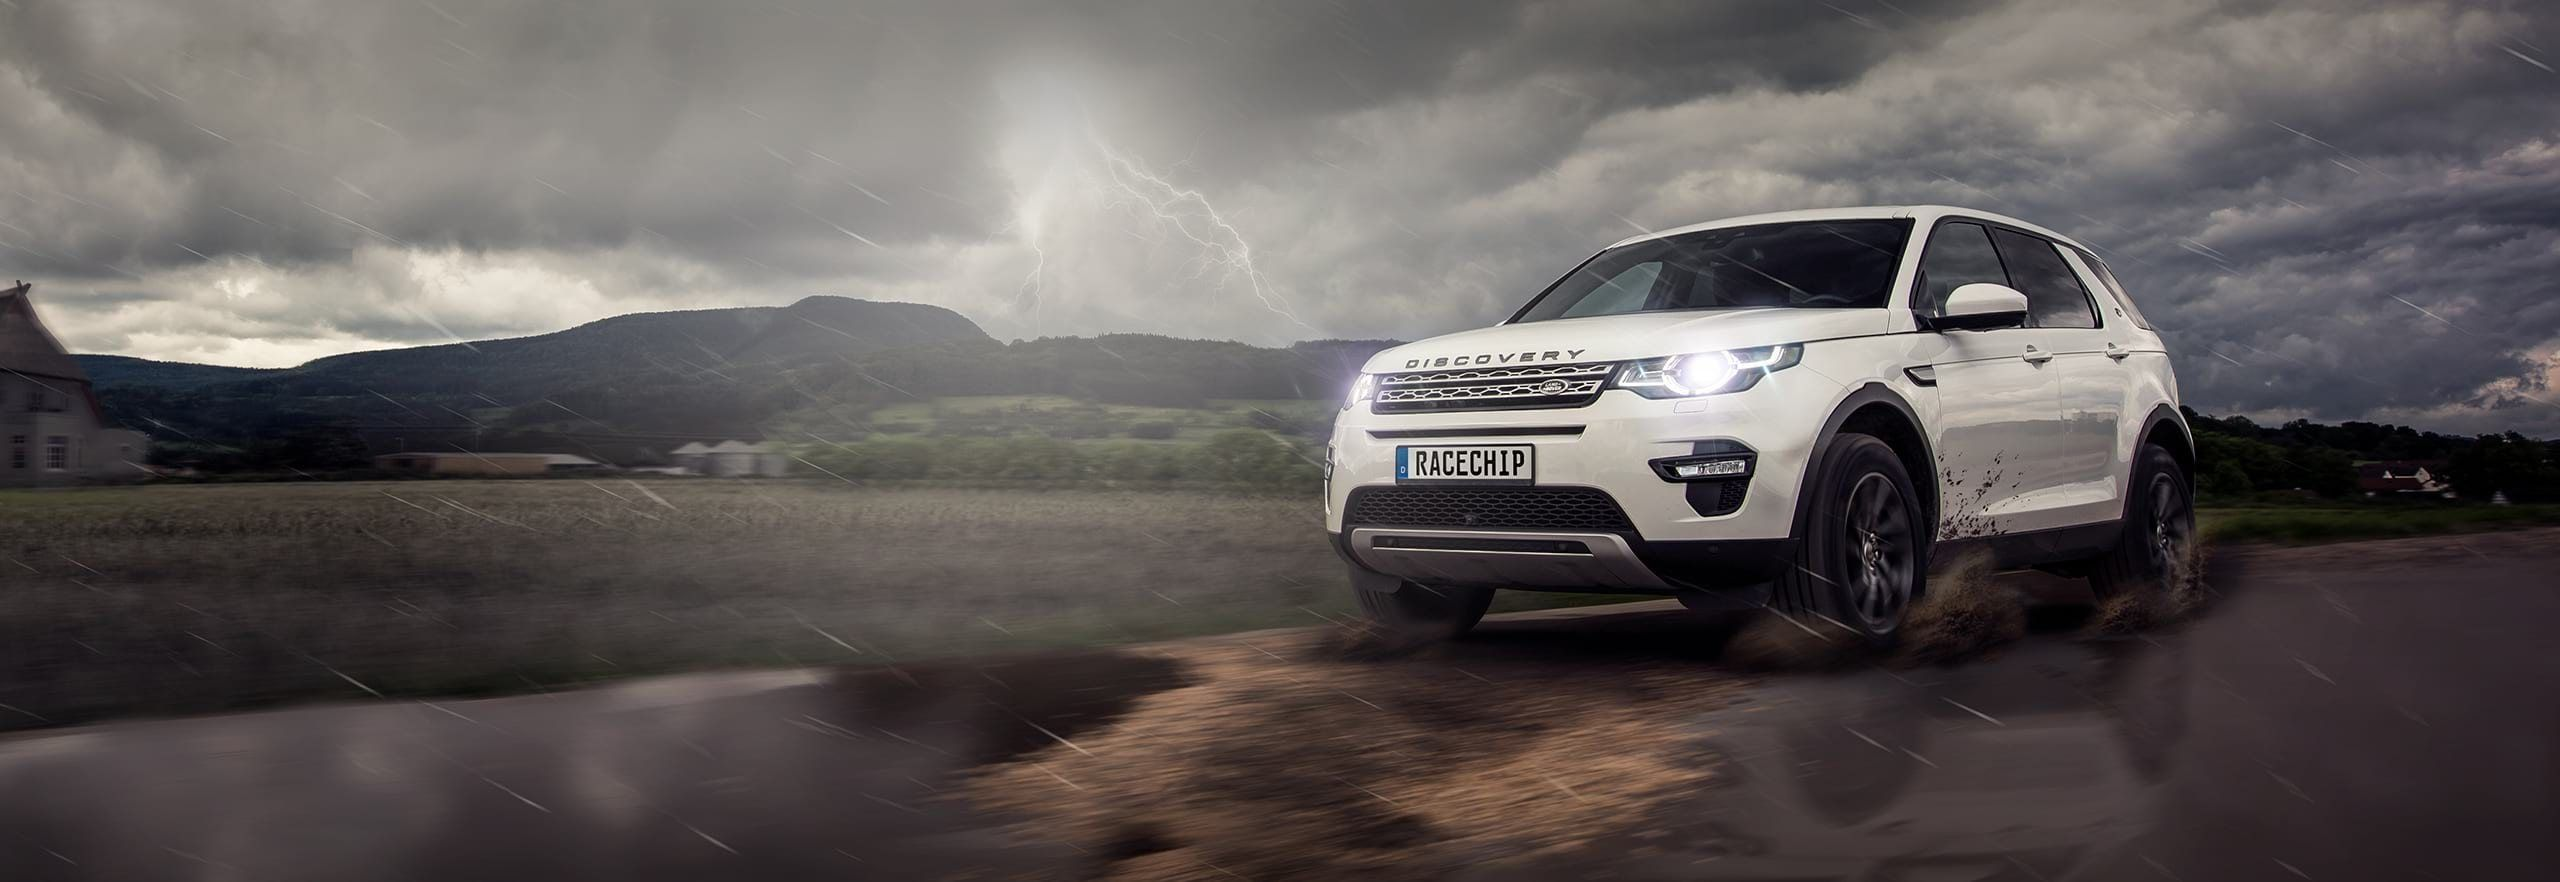 2021 Land Rover Discovery Specs Land rover, Land rover